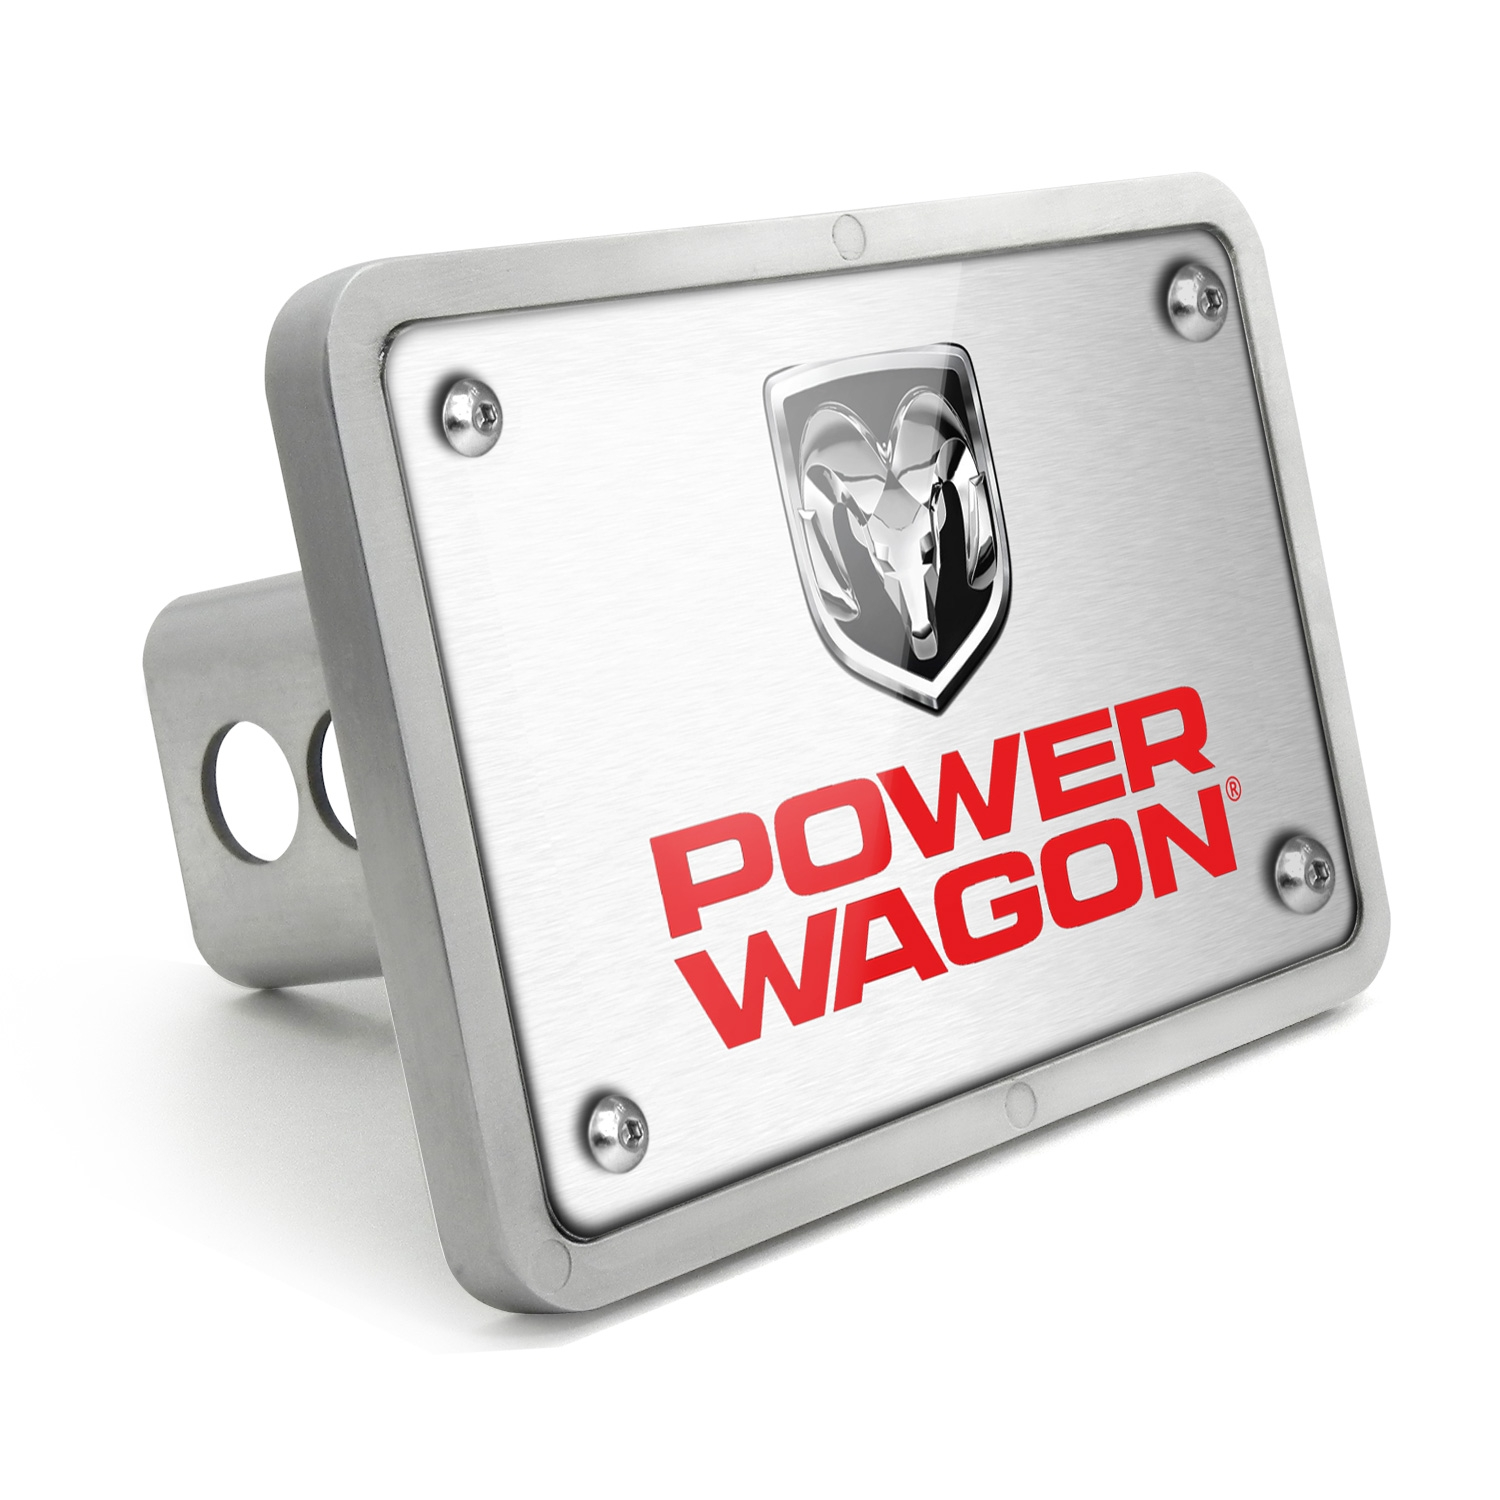 RAM Power Wagon UV Graphic Brushed Silver Billet Aluminum 2 inch Tow Hitch Cover